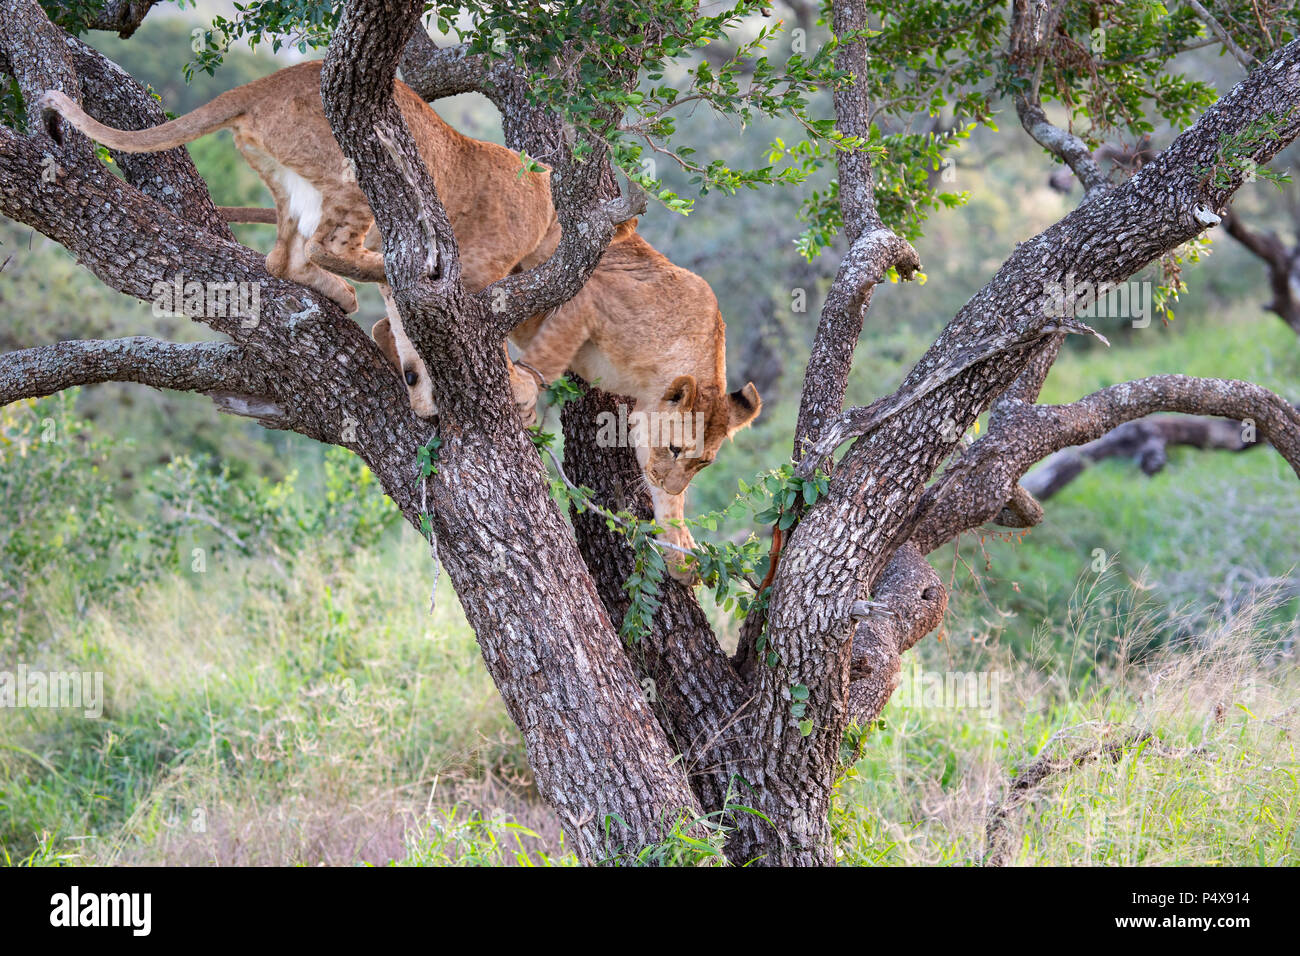 Young lion Panthera leo descending from a tree in the South African bush - Stock Image